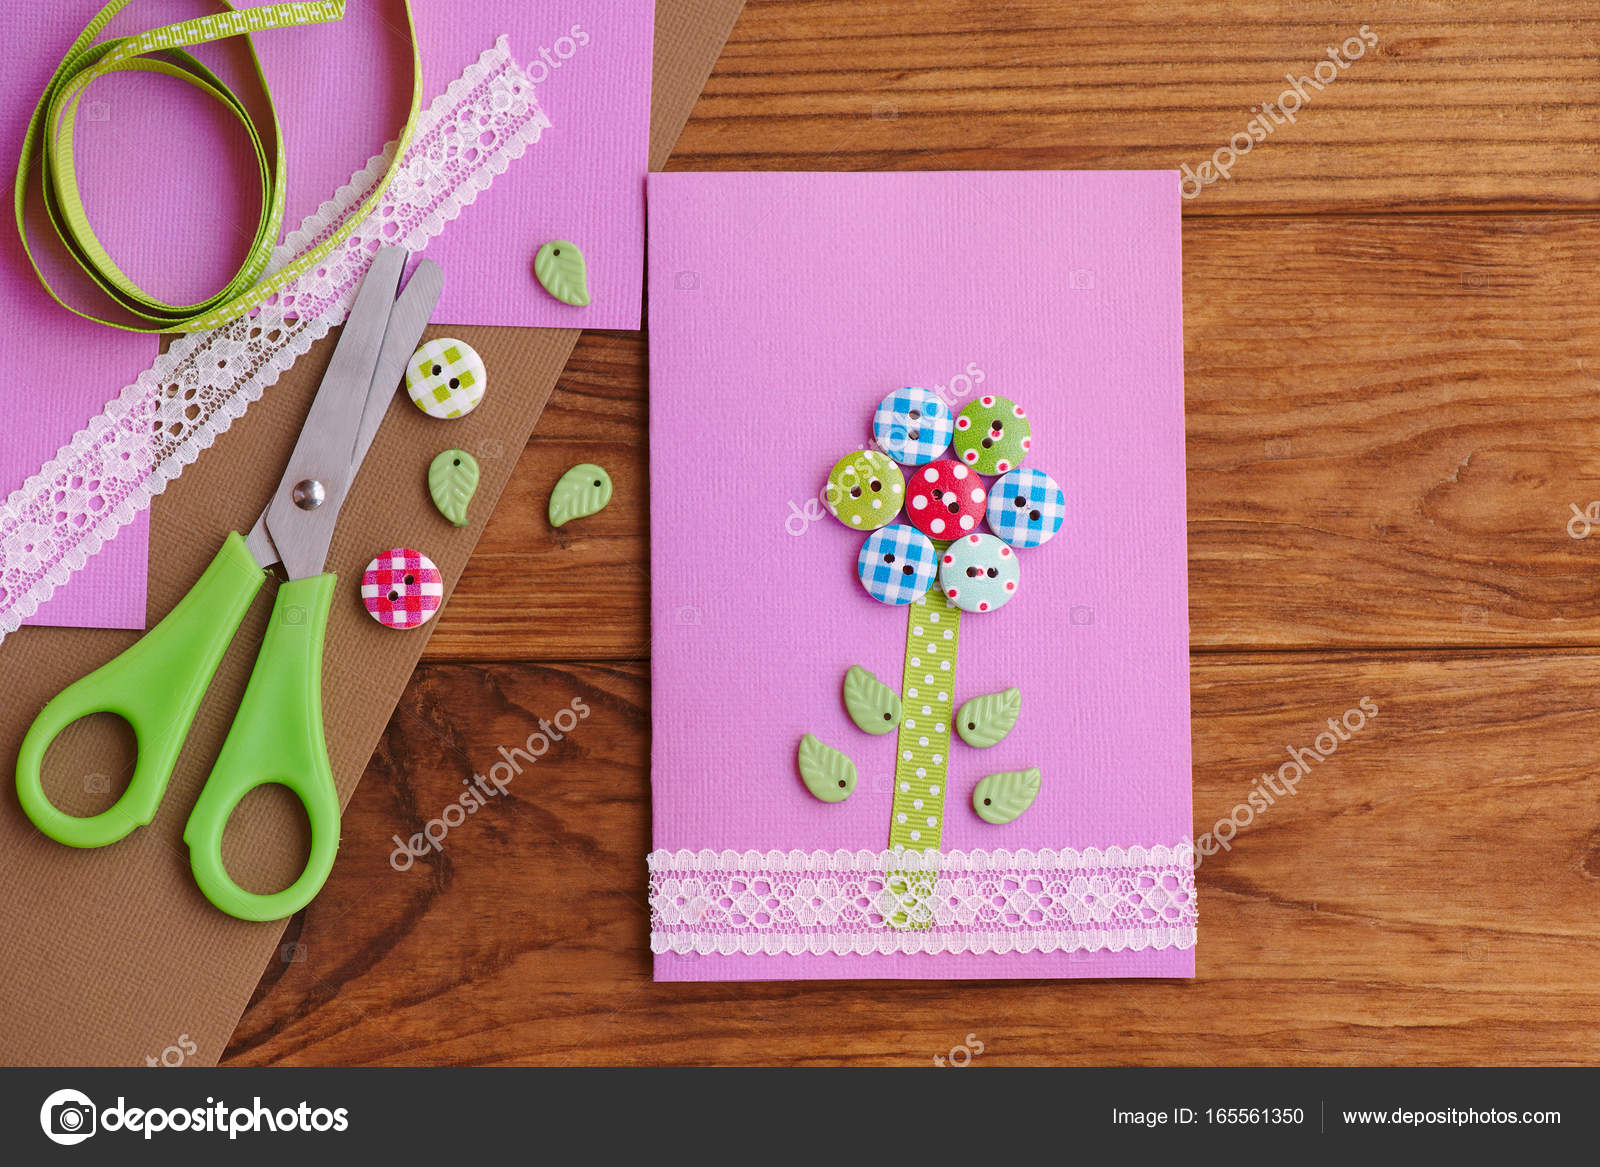 Greeting card with a flower from wooden buttons, decorated ...